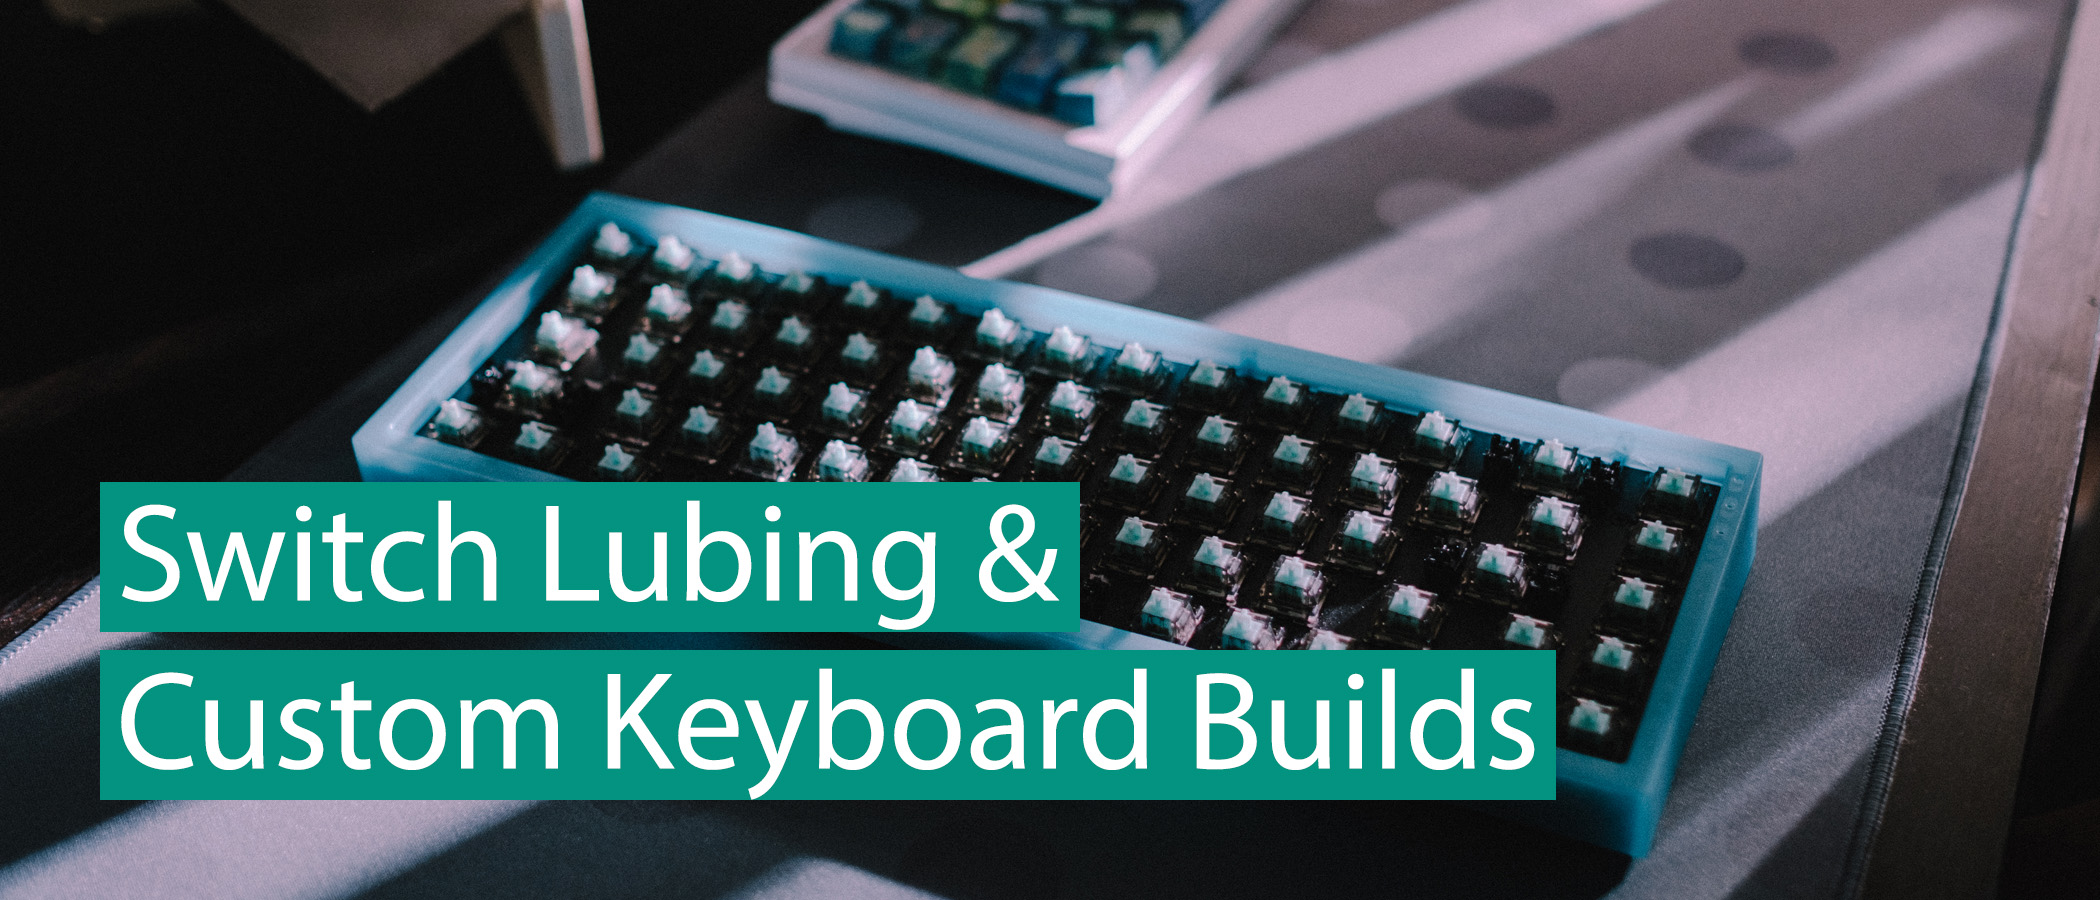 Switch Lubing and Keyboard Building Services